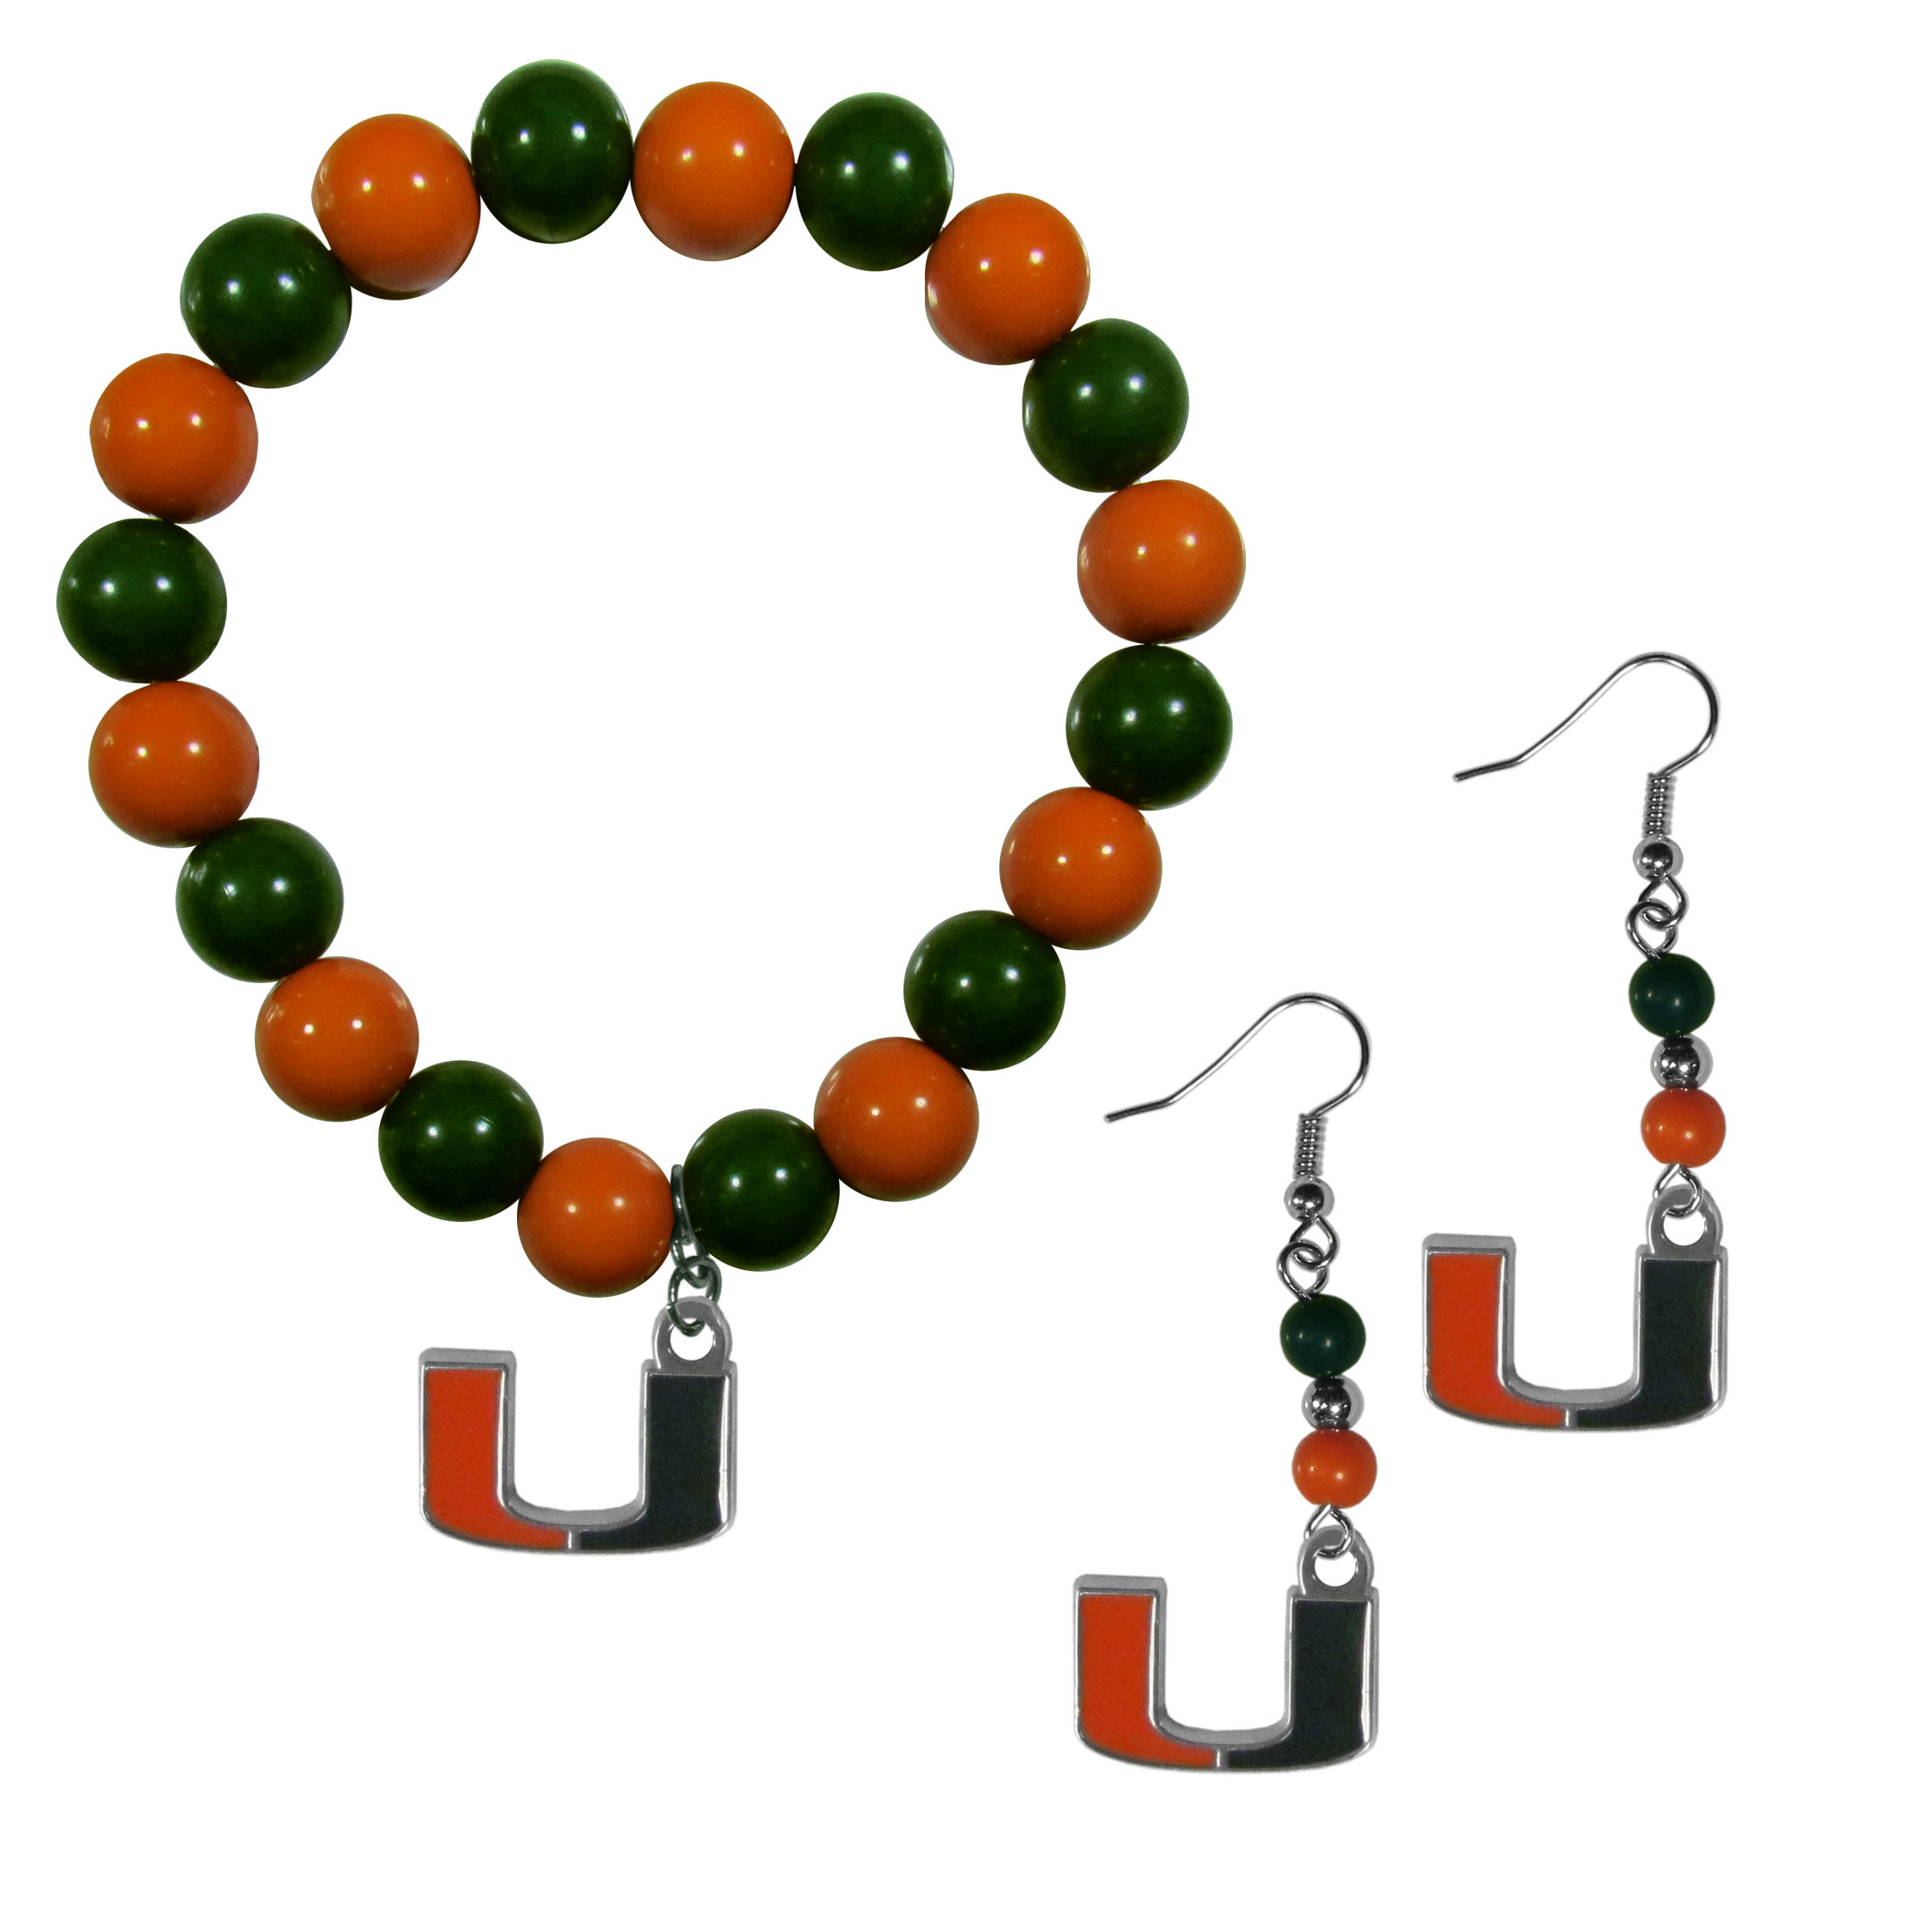 Miami Hurricanes Fan Bead Earrings and Bracelet Set - This fun and colorful Miami Hurricanes fan bead jewelry set is fun and casual with eye-catching beads in bright team colors. The fashionable dangle earrings feature a team colored beads that drop down to a carved and enameled charm. The stretch bracelet has larger matching beads that make a striking statement and have a matching team charm. These sassy yet sporty jewelry pieces make a perfect gift for any female fan. Spice up your game-day outfit with these fun colorful earrings and bracelet that are also cute enough for any day.